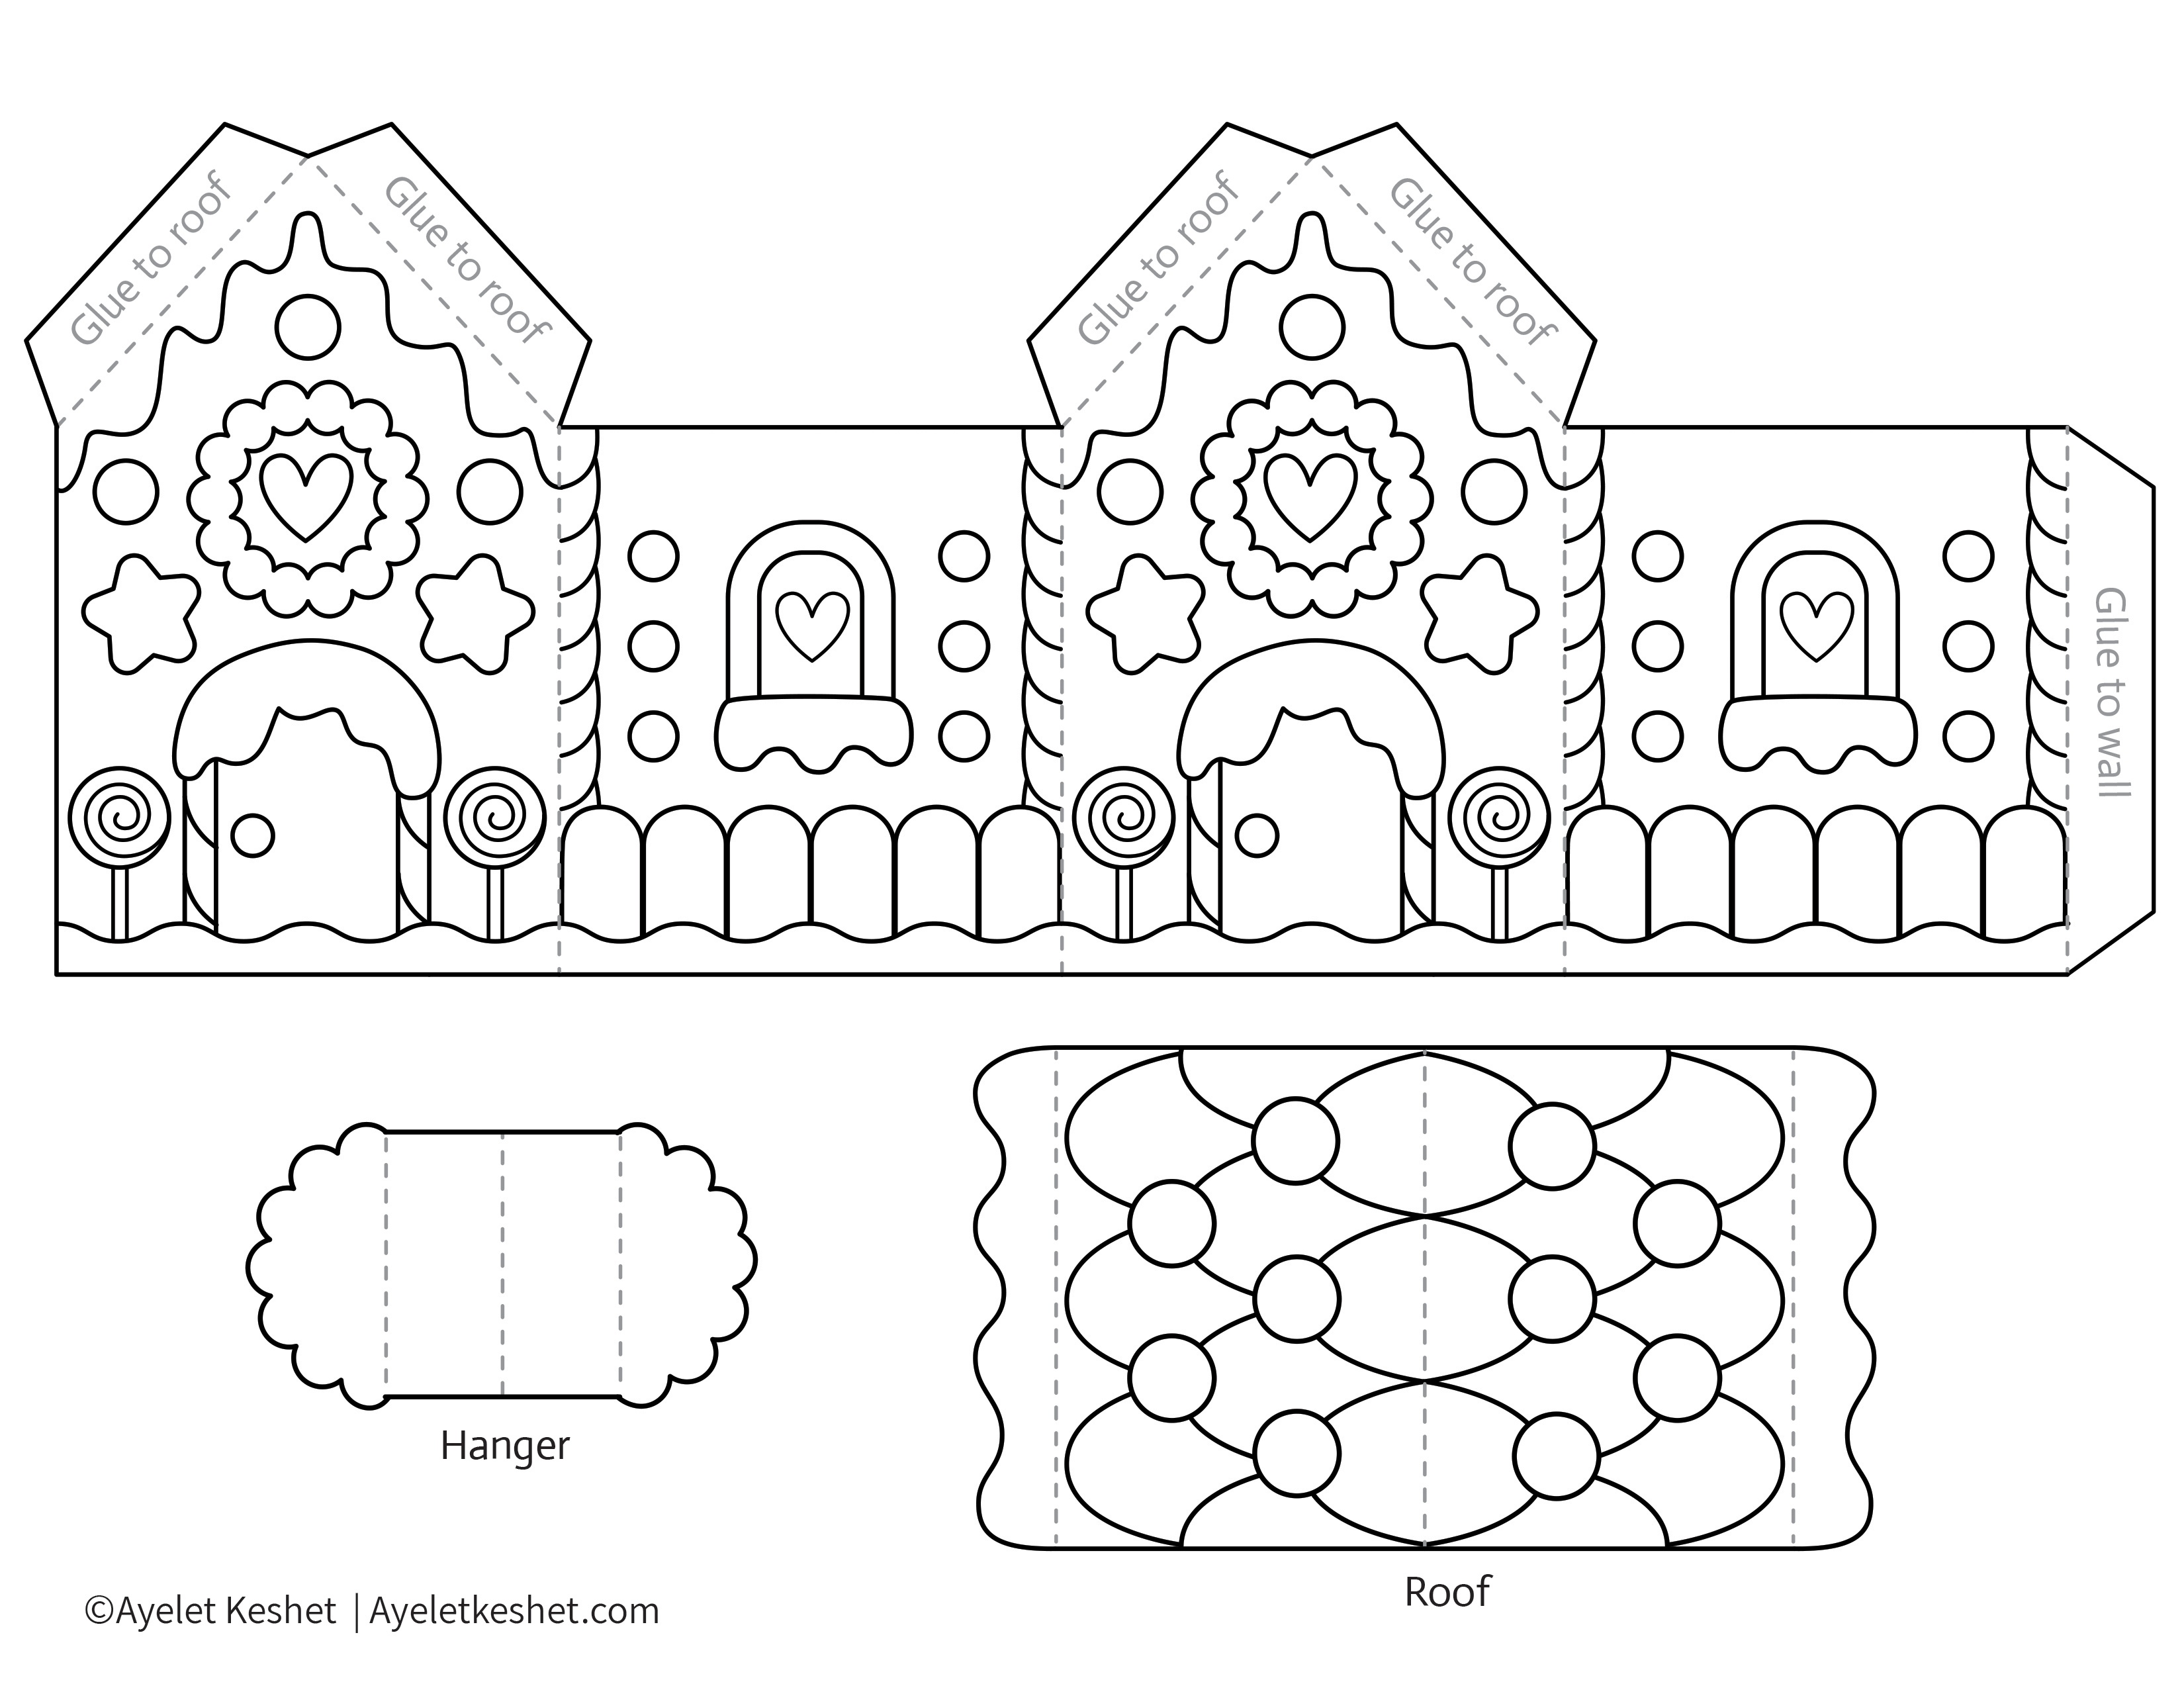 Printable Gingerbread House Template To Color - Ayelet Keshet - Free Printable Gingerbread House